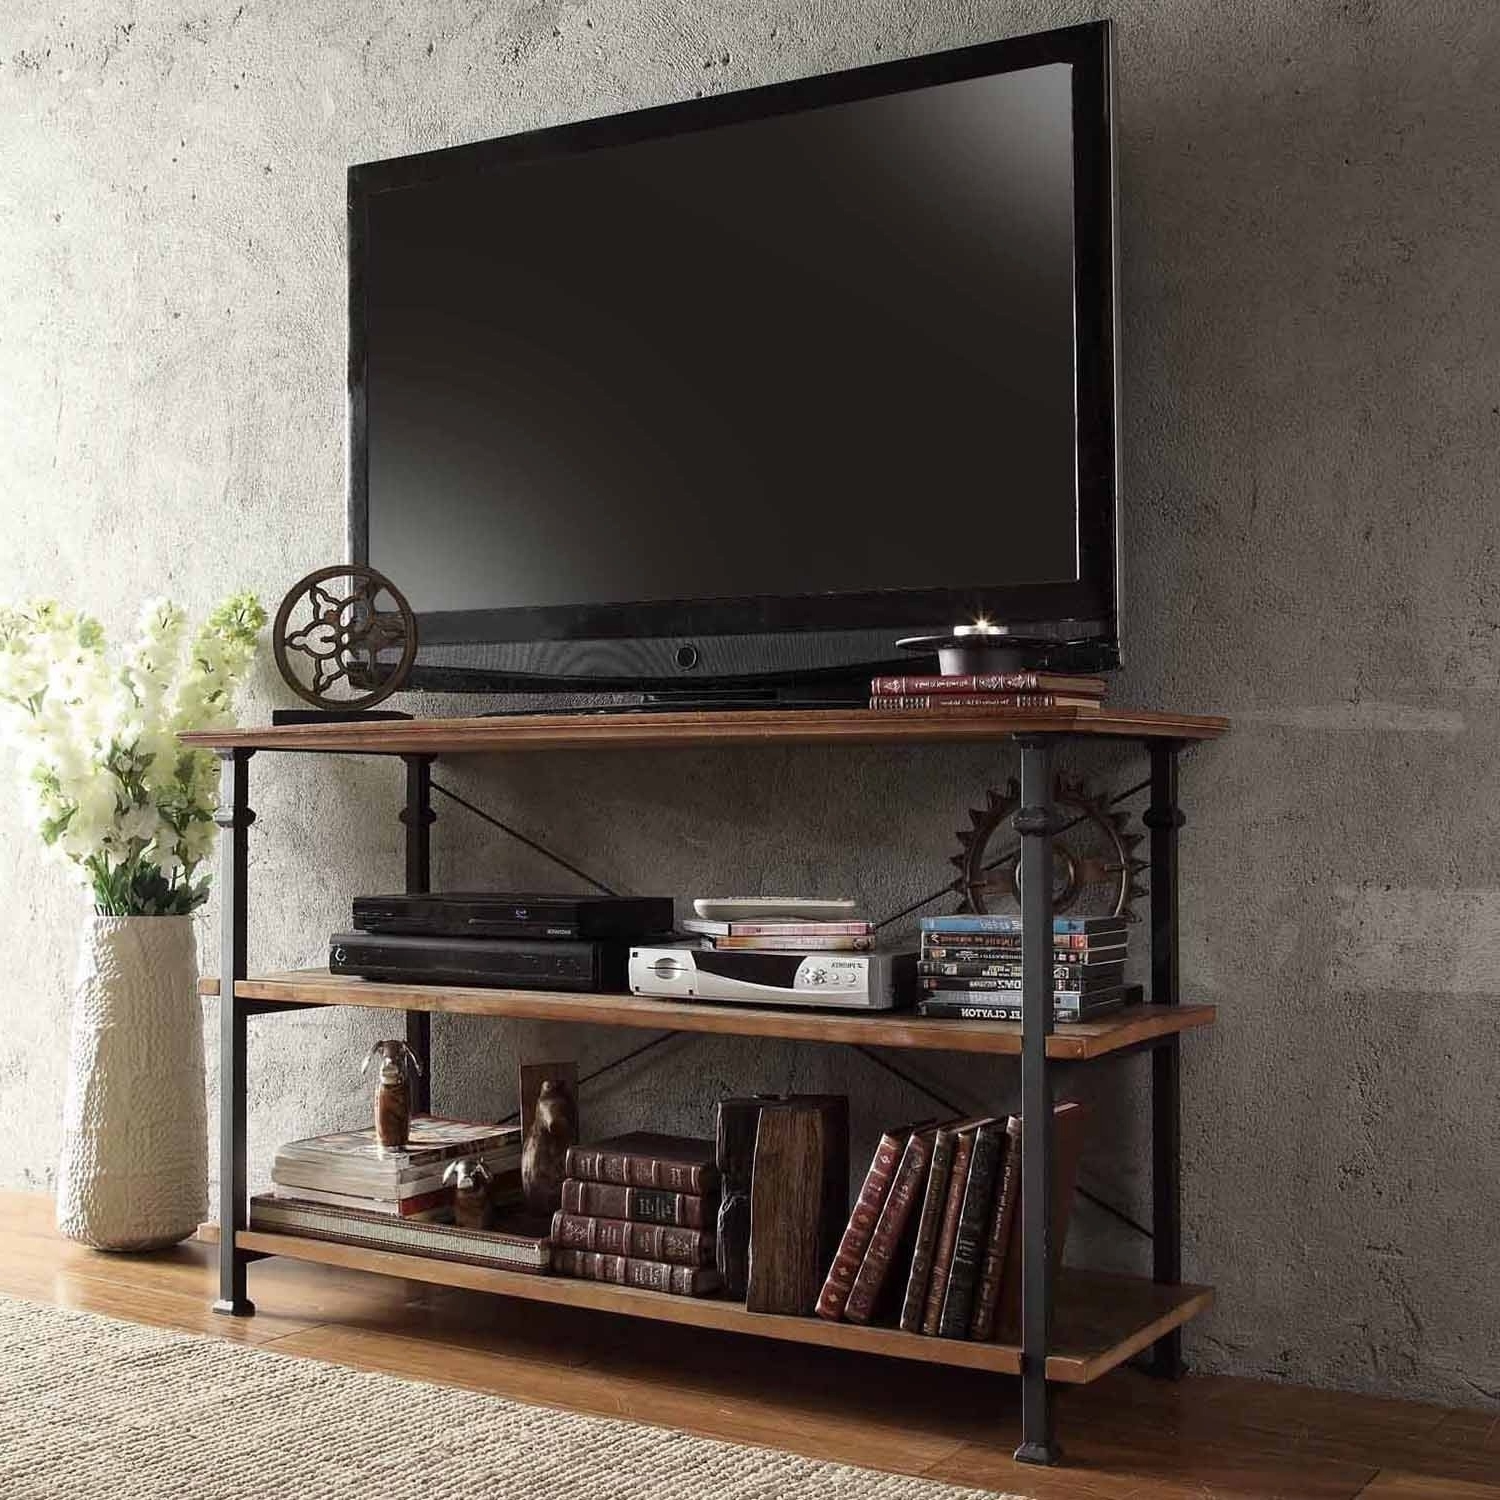 Fashionable Furniture: Handmade Wood And Metal Industrial Tv Stand With Shelf With Handmade Tv Unit (View 14 of 15)